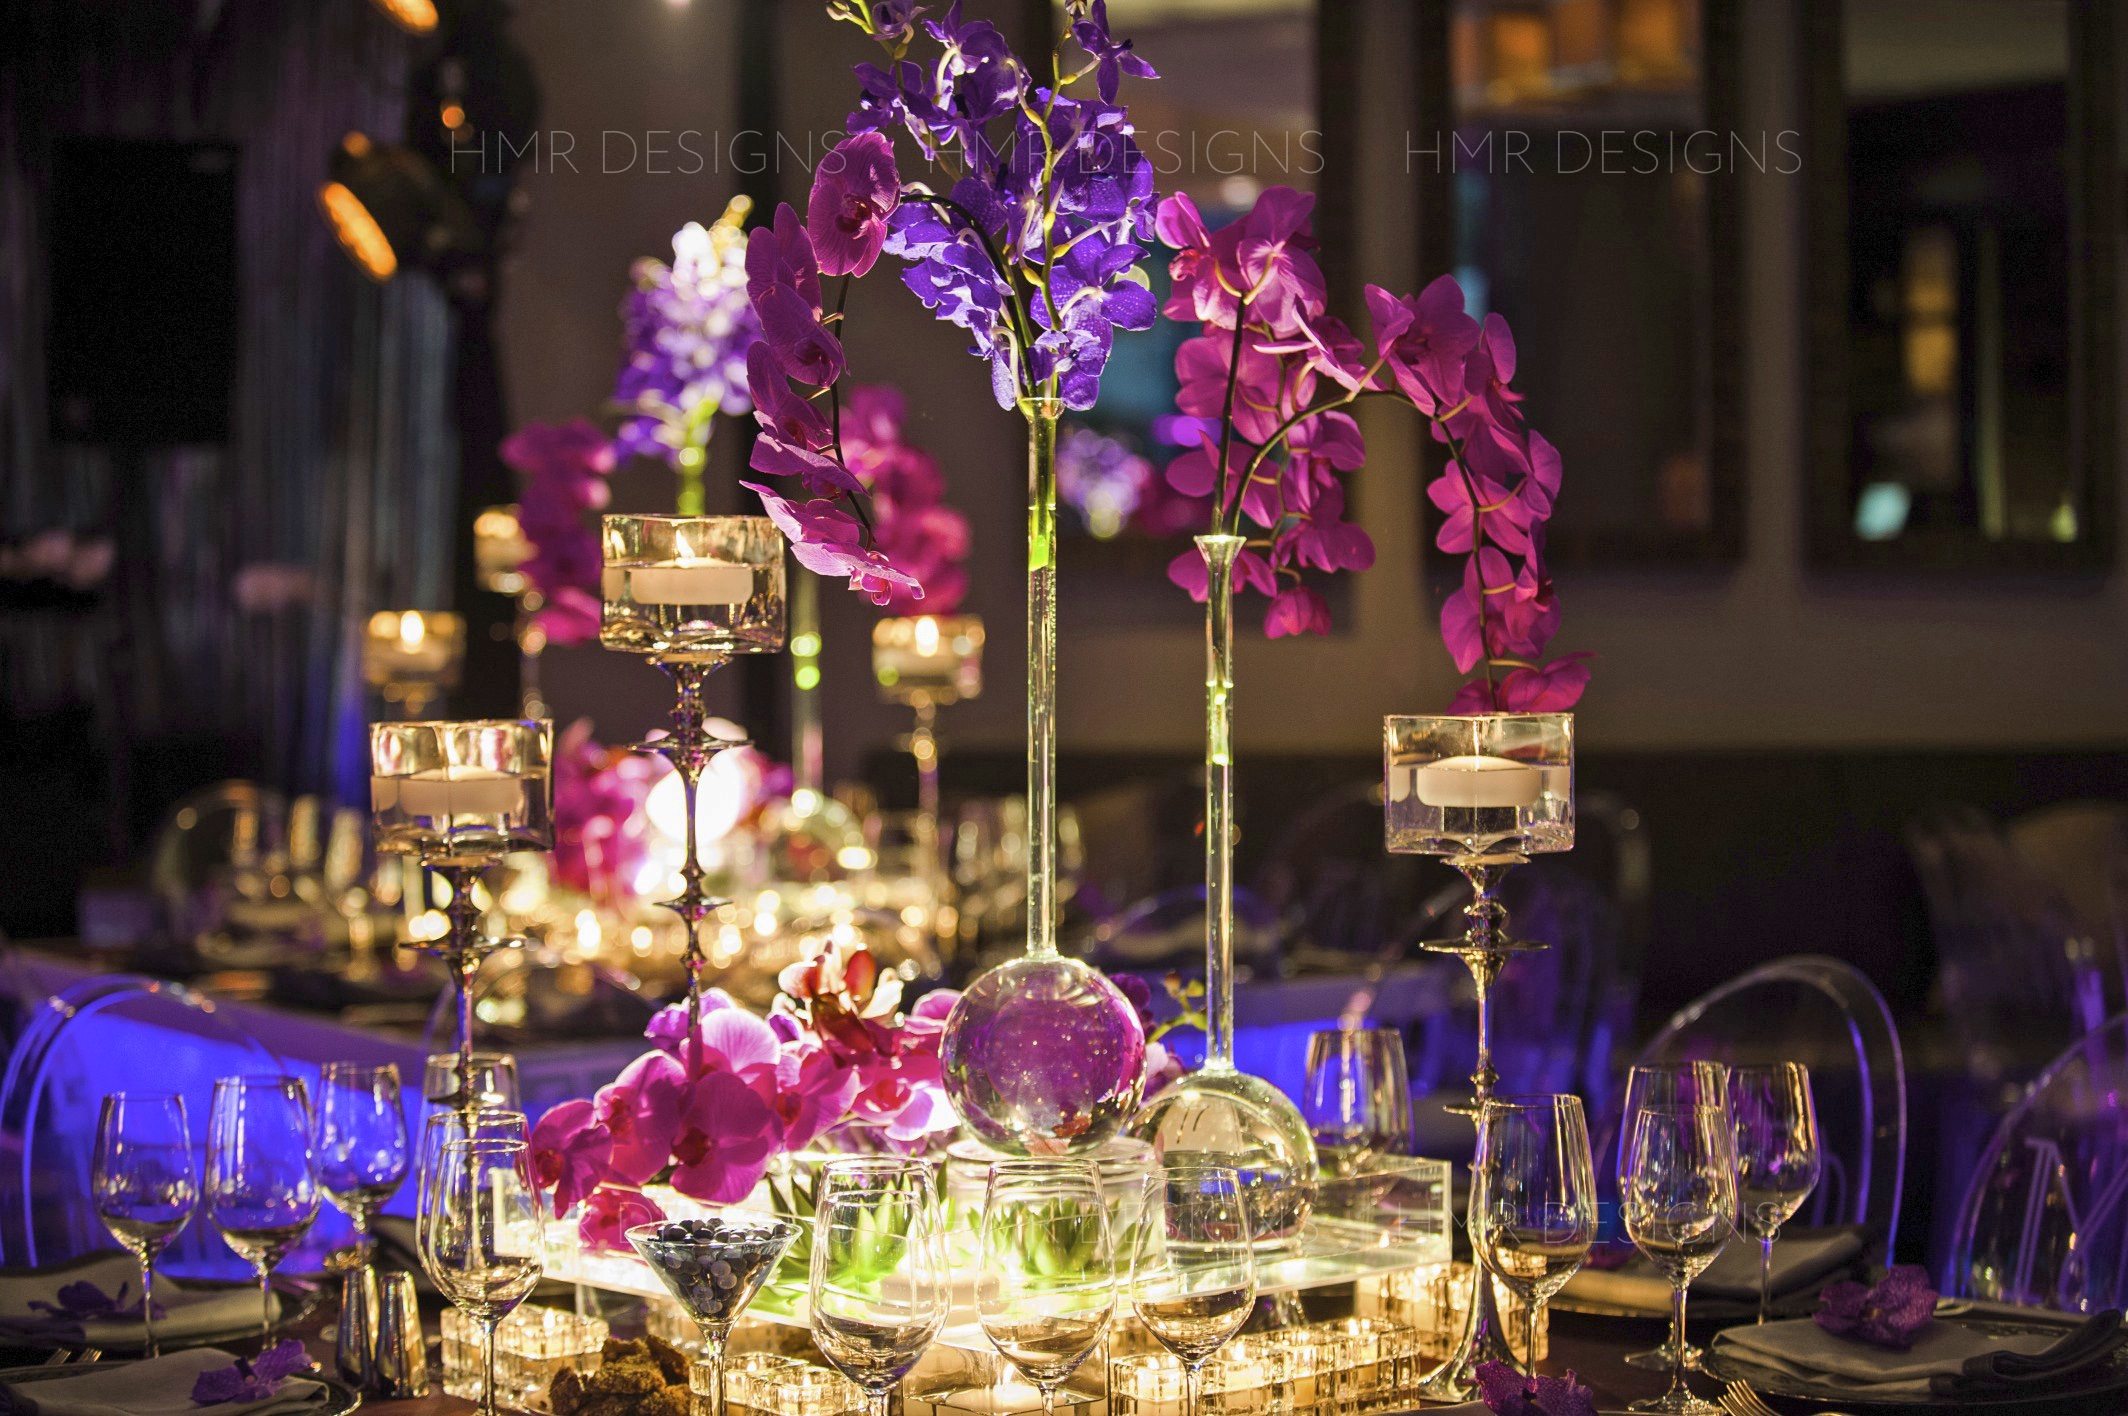 Lush, modern centerpieces feature sleek candlelight and radiant magenta and purple orchids for a custom celebration at Trump International Hotel and Tower Chicago designed by HMR Designs